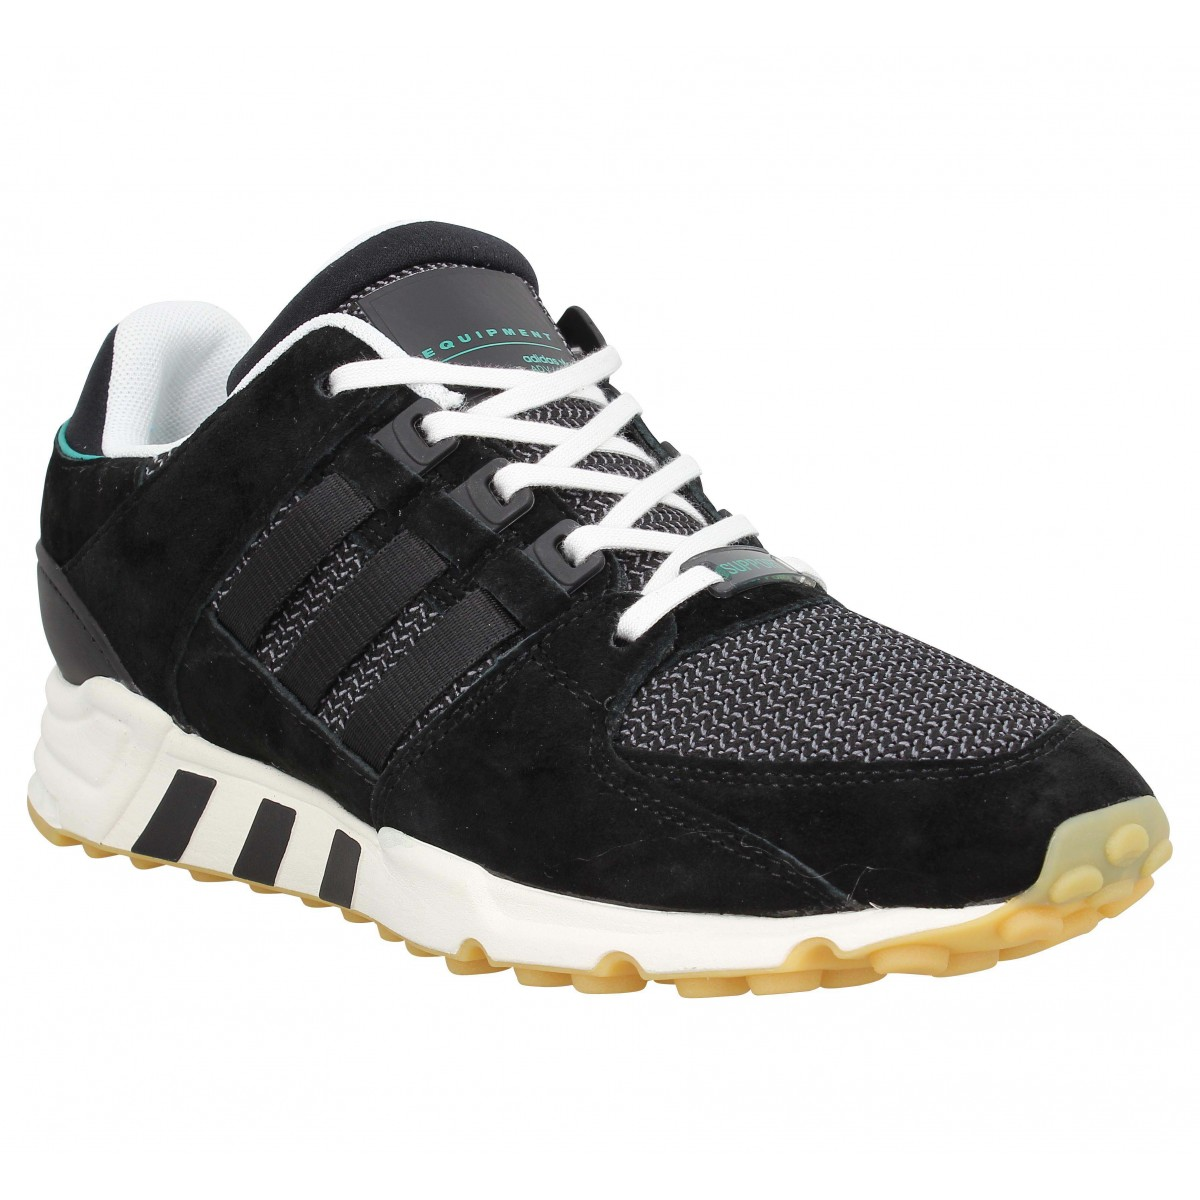 Adidas Marque Eqt Support Rf Toile...